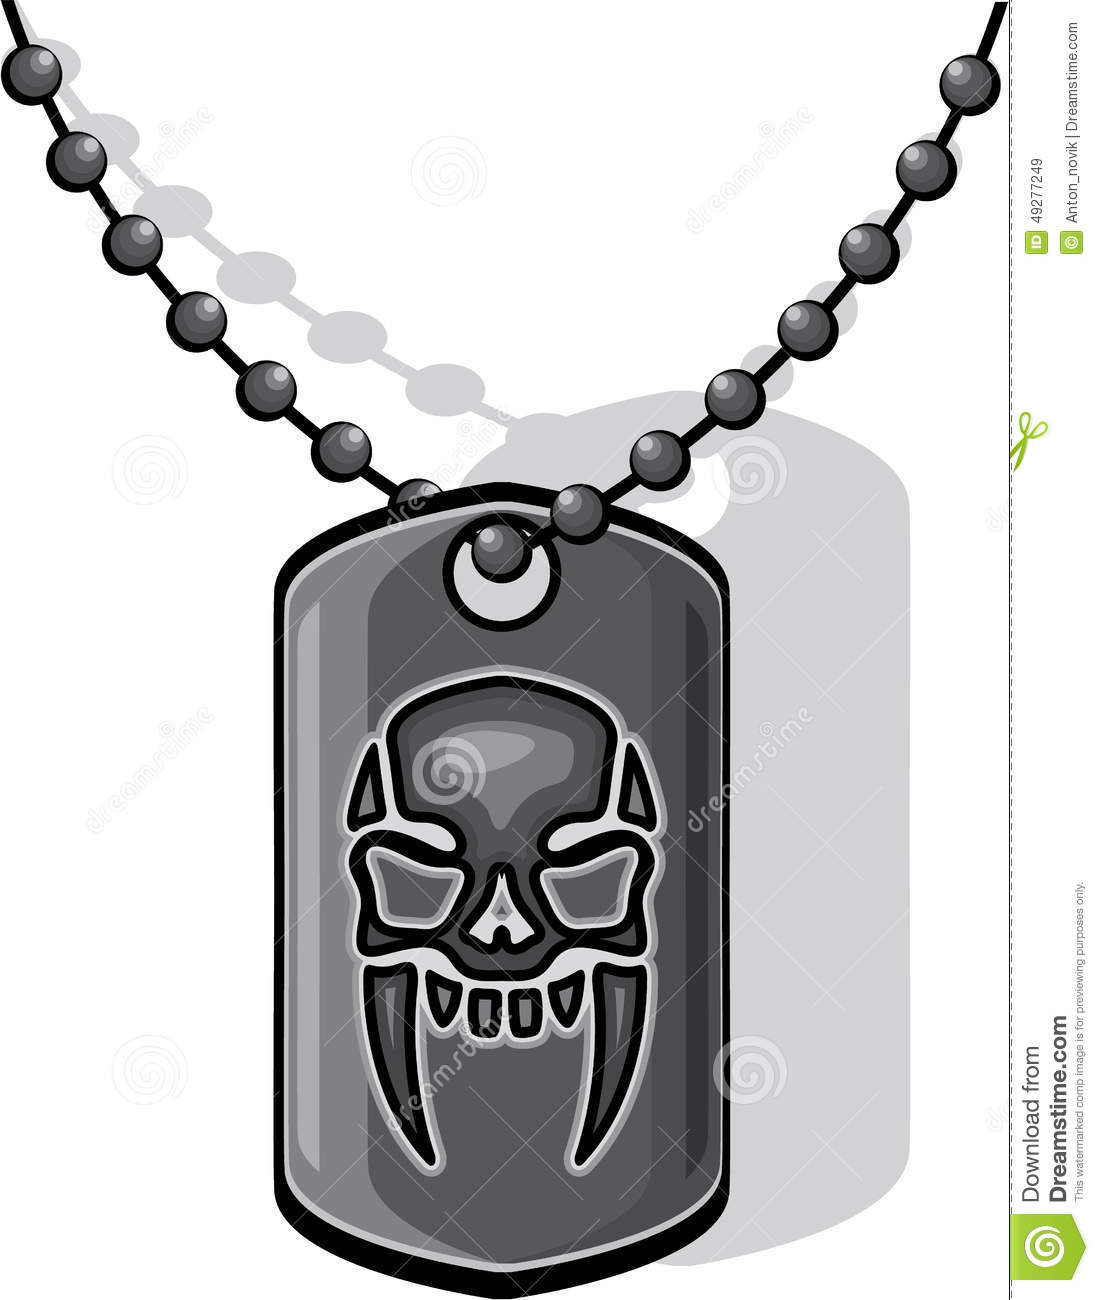 War Skull Dog Tag Stock Vector - Image: 49277249